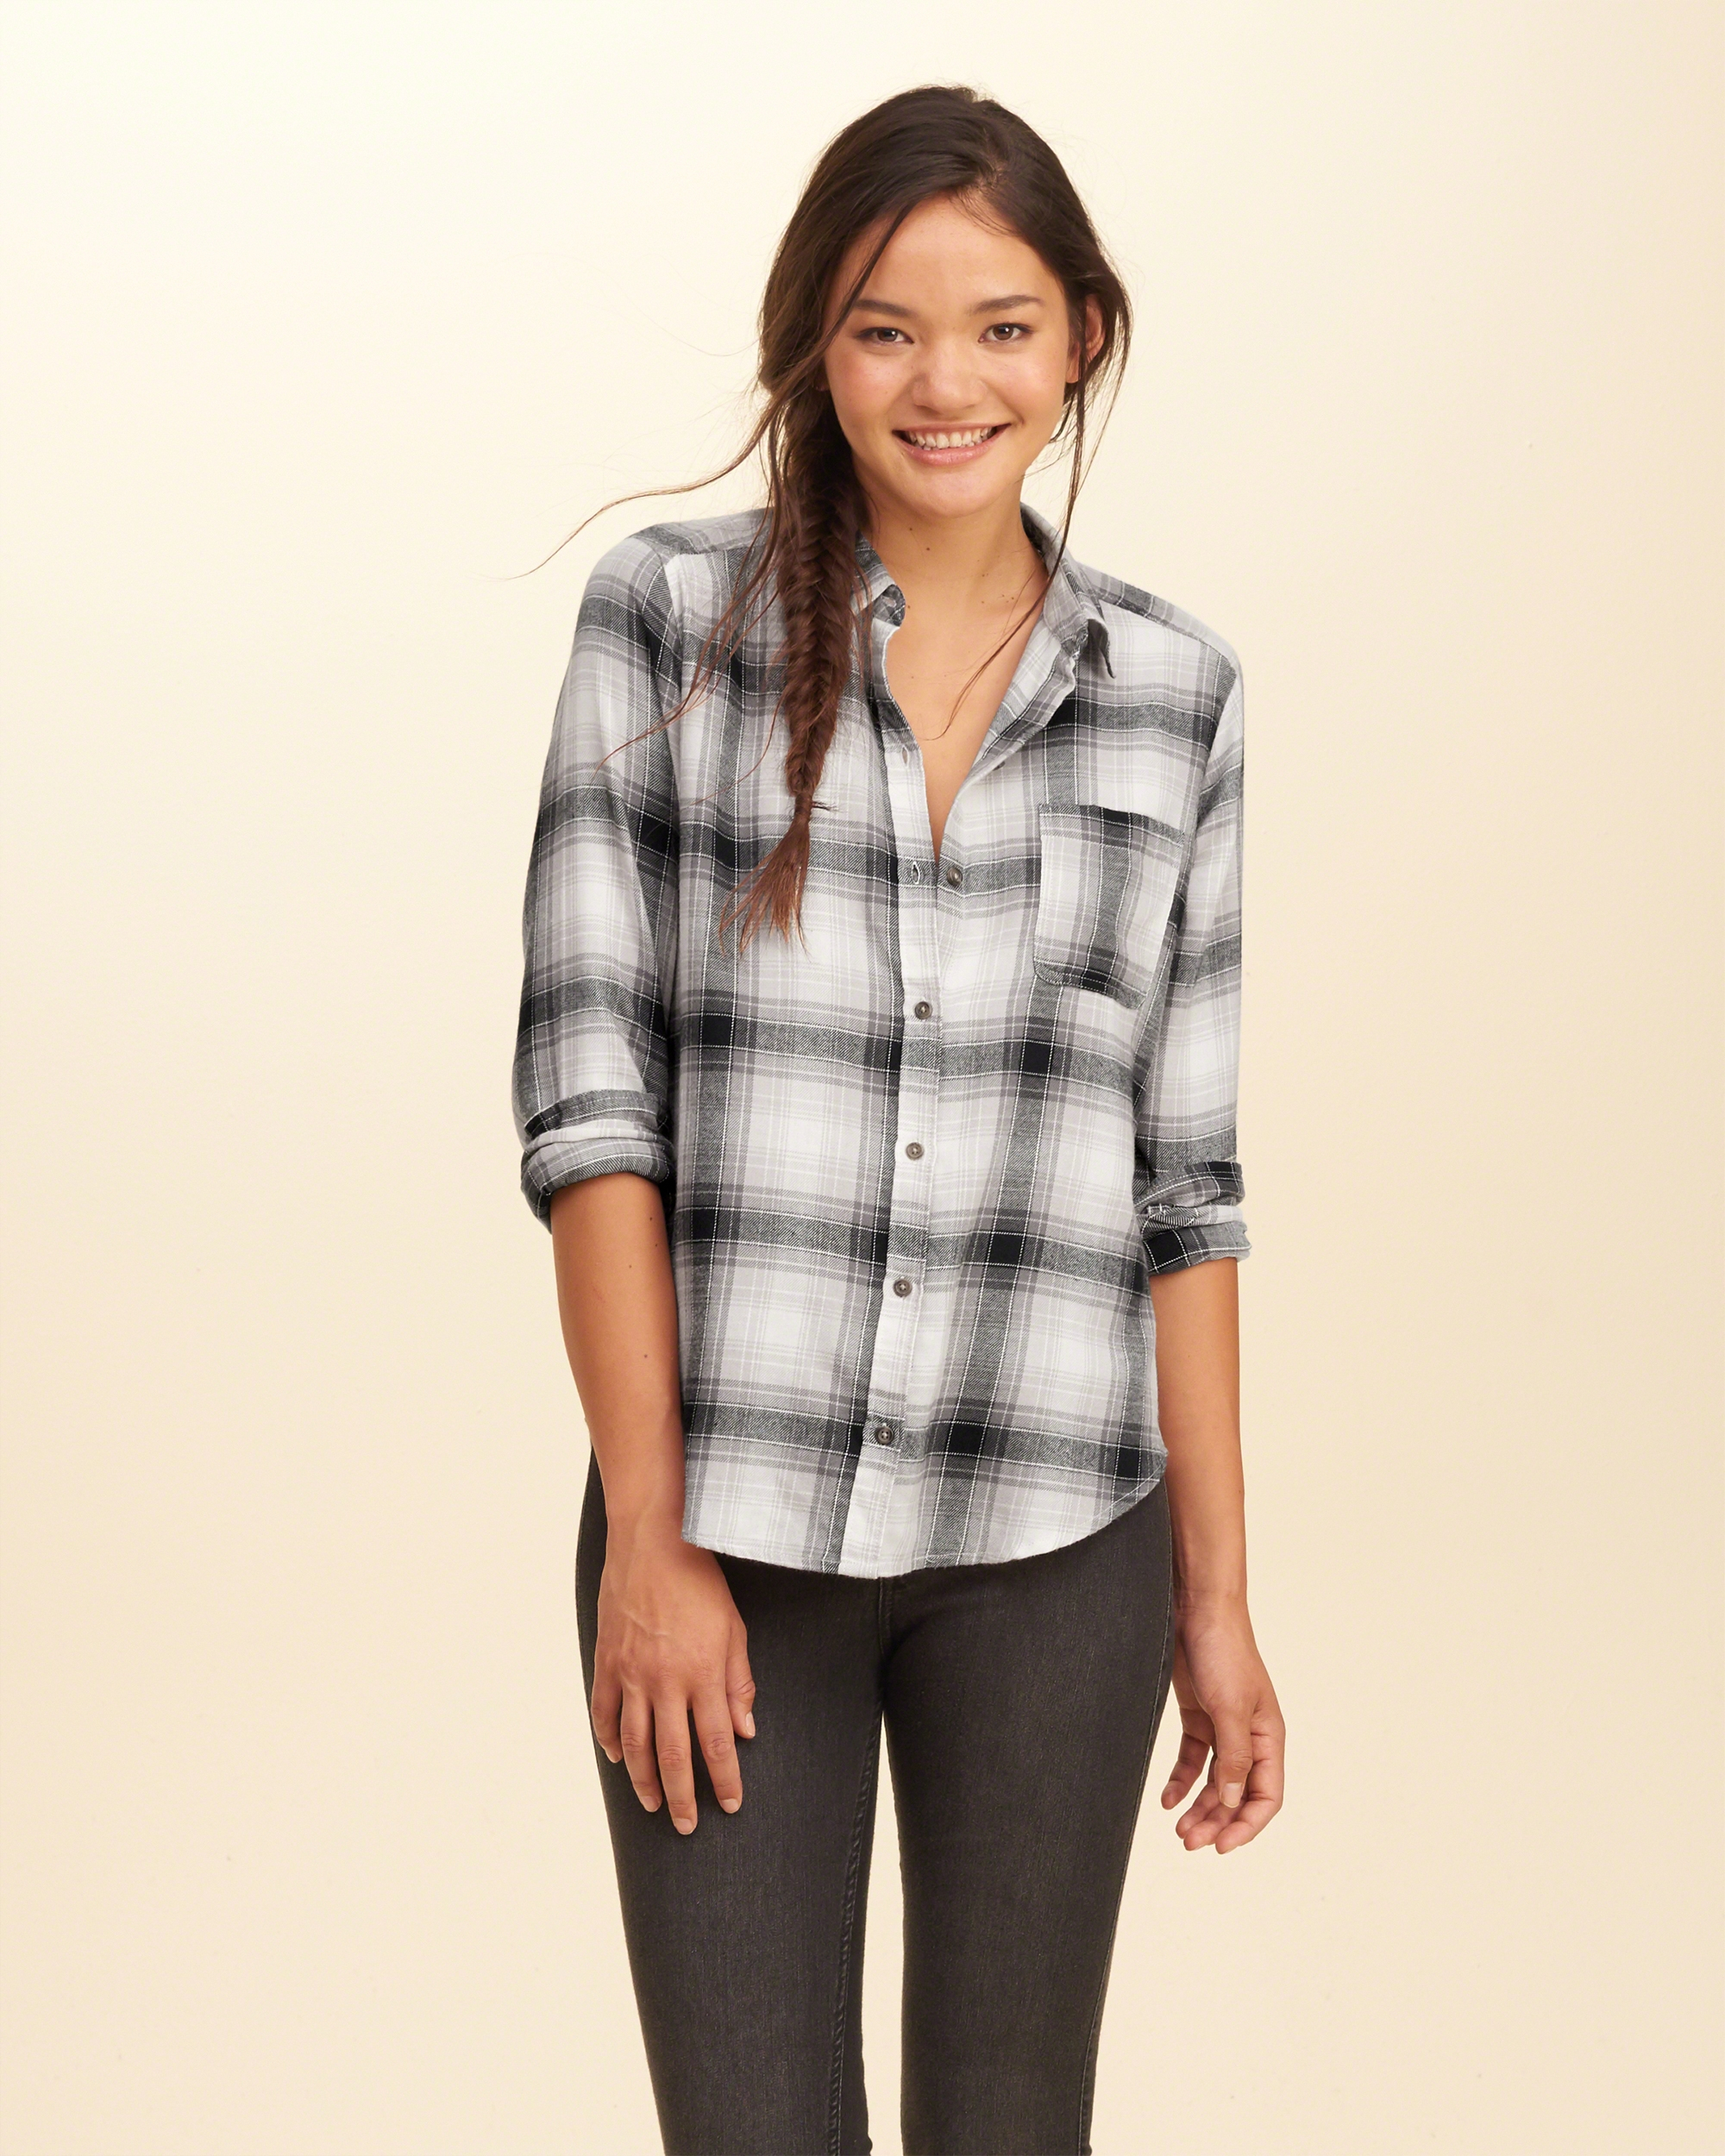 Lyst hollister button front plaid shirt in gray for Grey plaid shirt womens